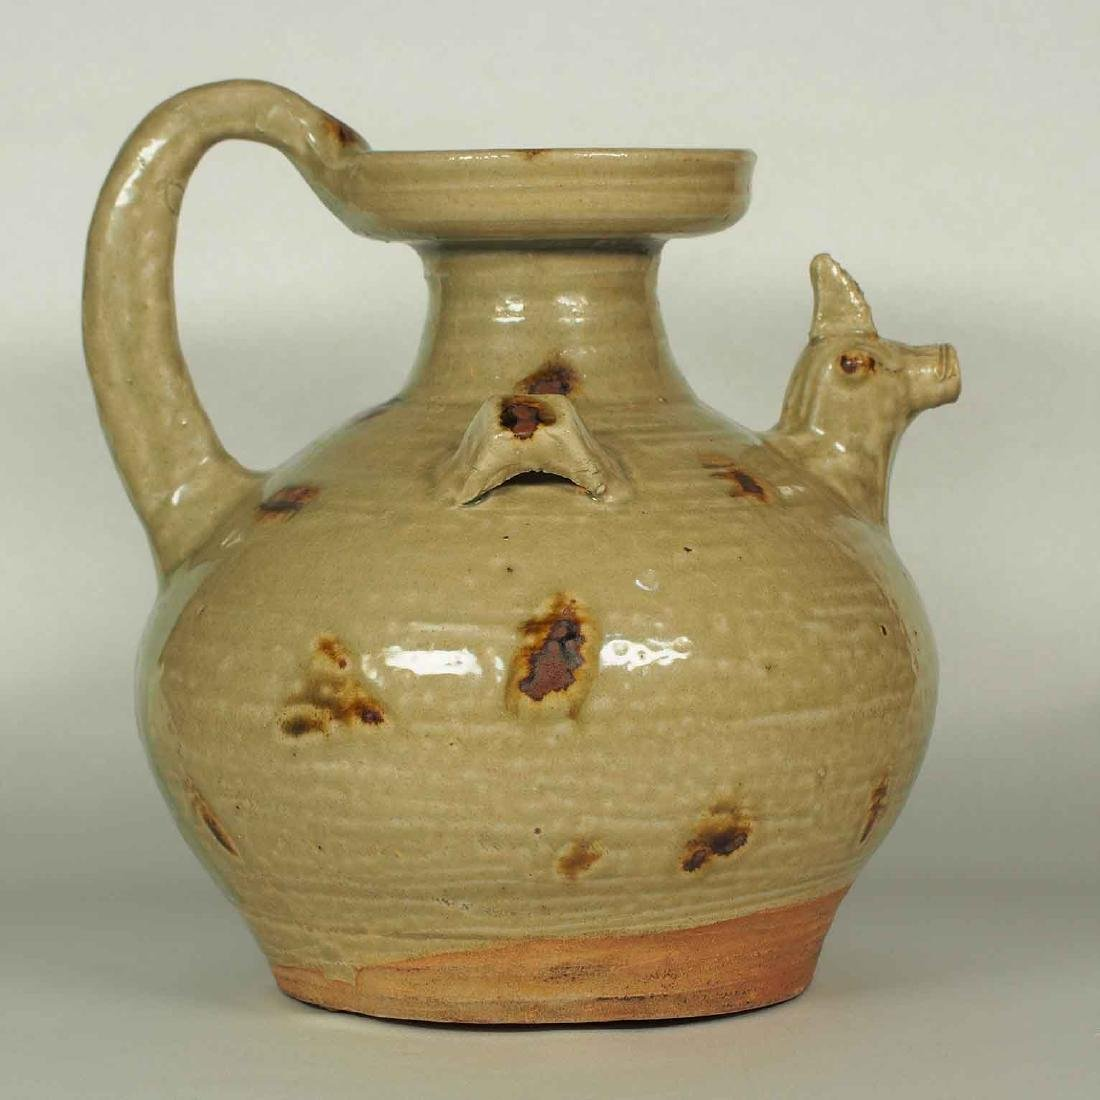 Yue Chicken-Head Spout Ewer with Brown Spots, Eastern